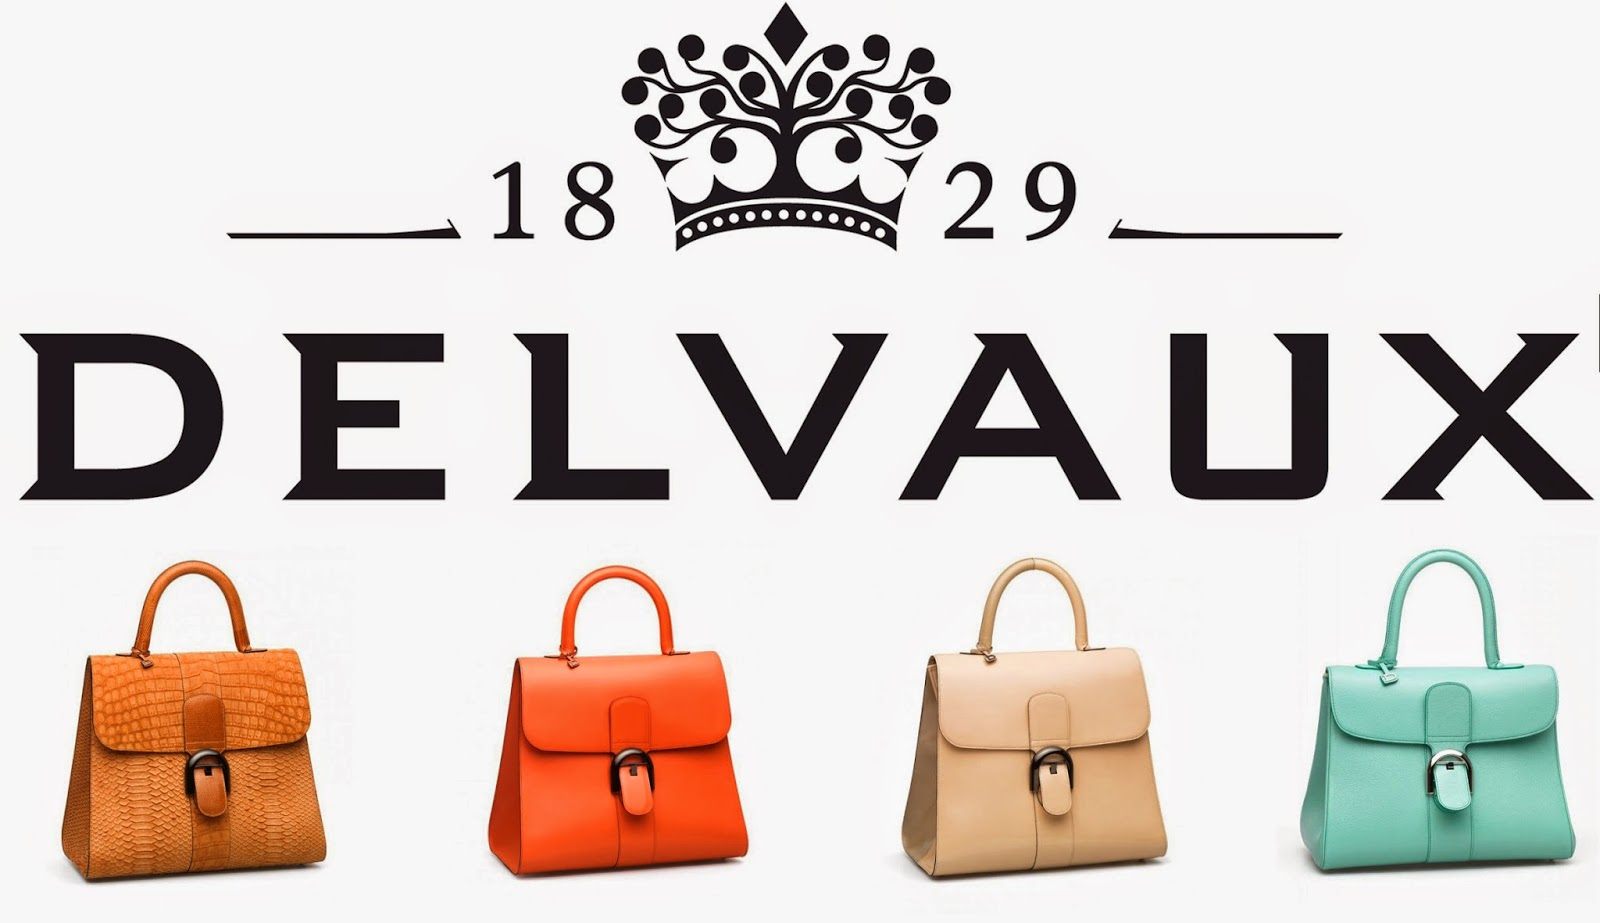 Eniwhere Fashion - Maison Delvaux